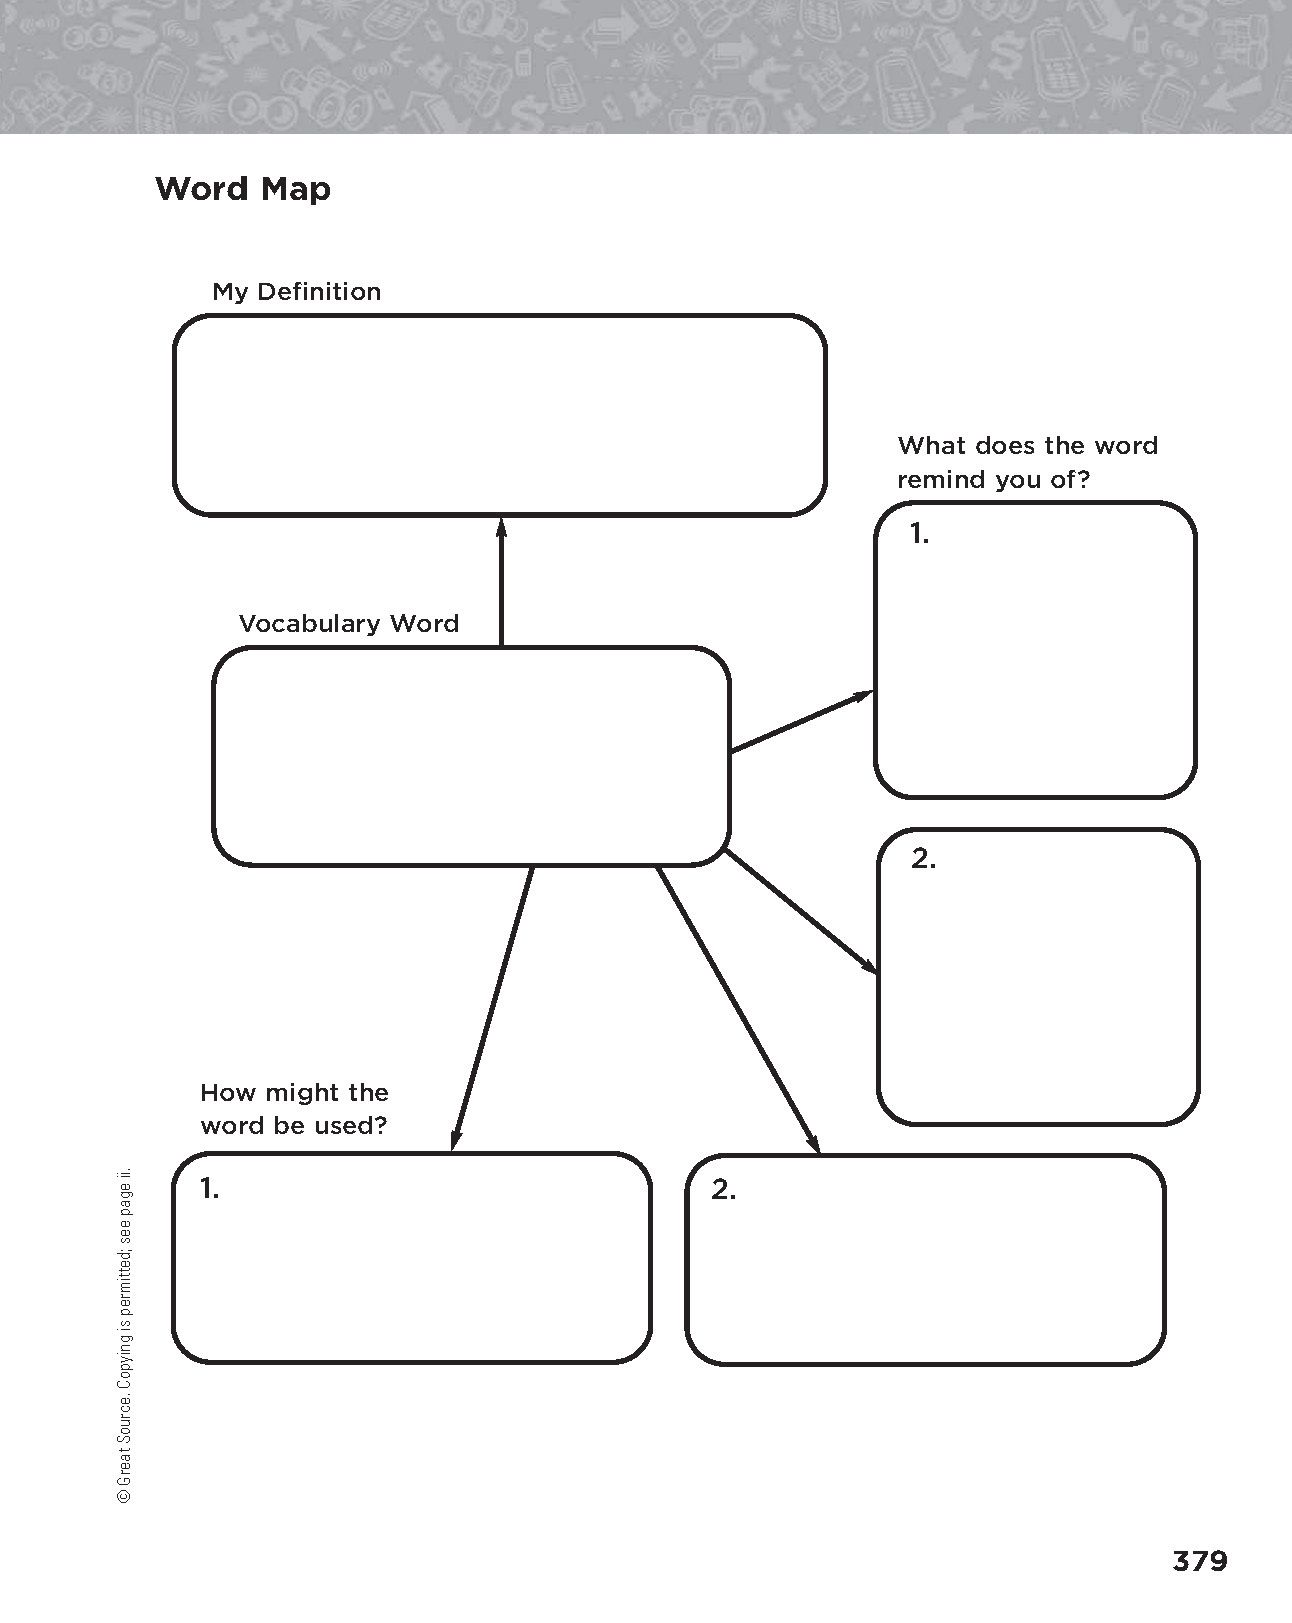 Word Map Grades 6 8 Download And Print This Word Map Graphic Organizer Visit Hmhco